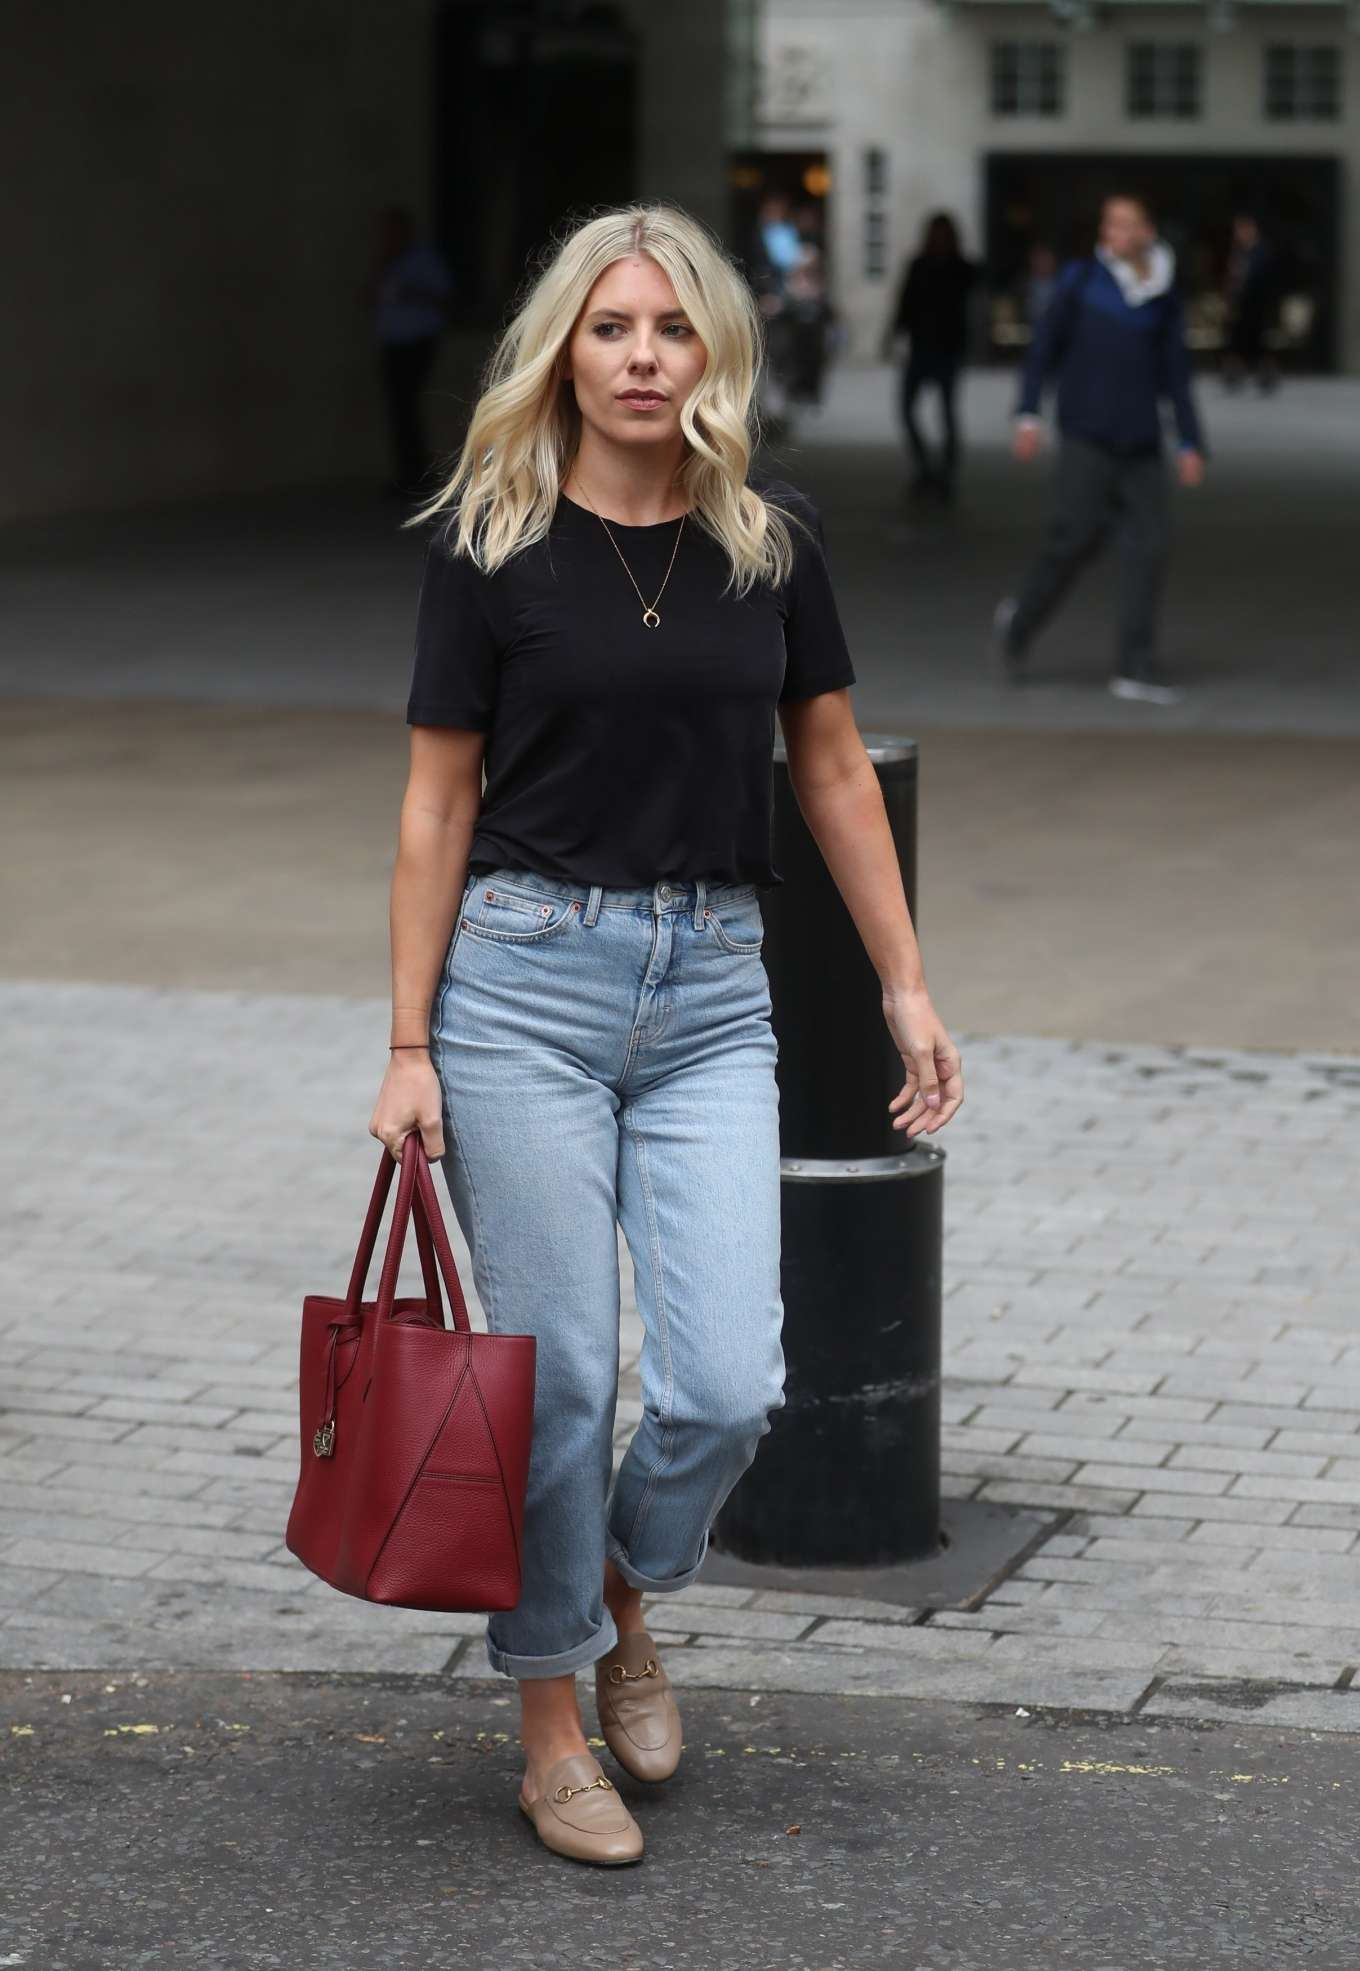 Mollie King - Leaving the BBC studios in London